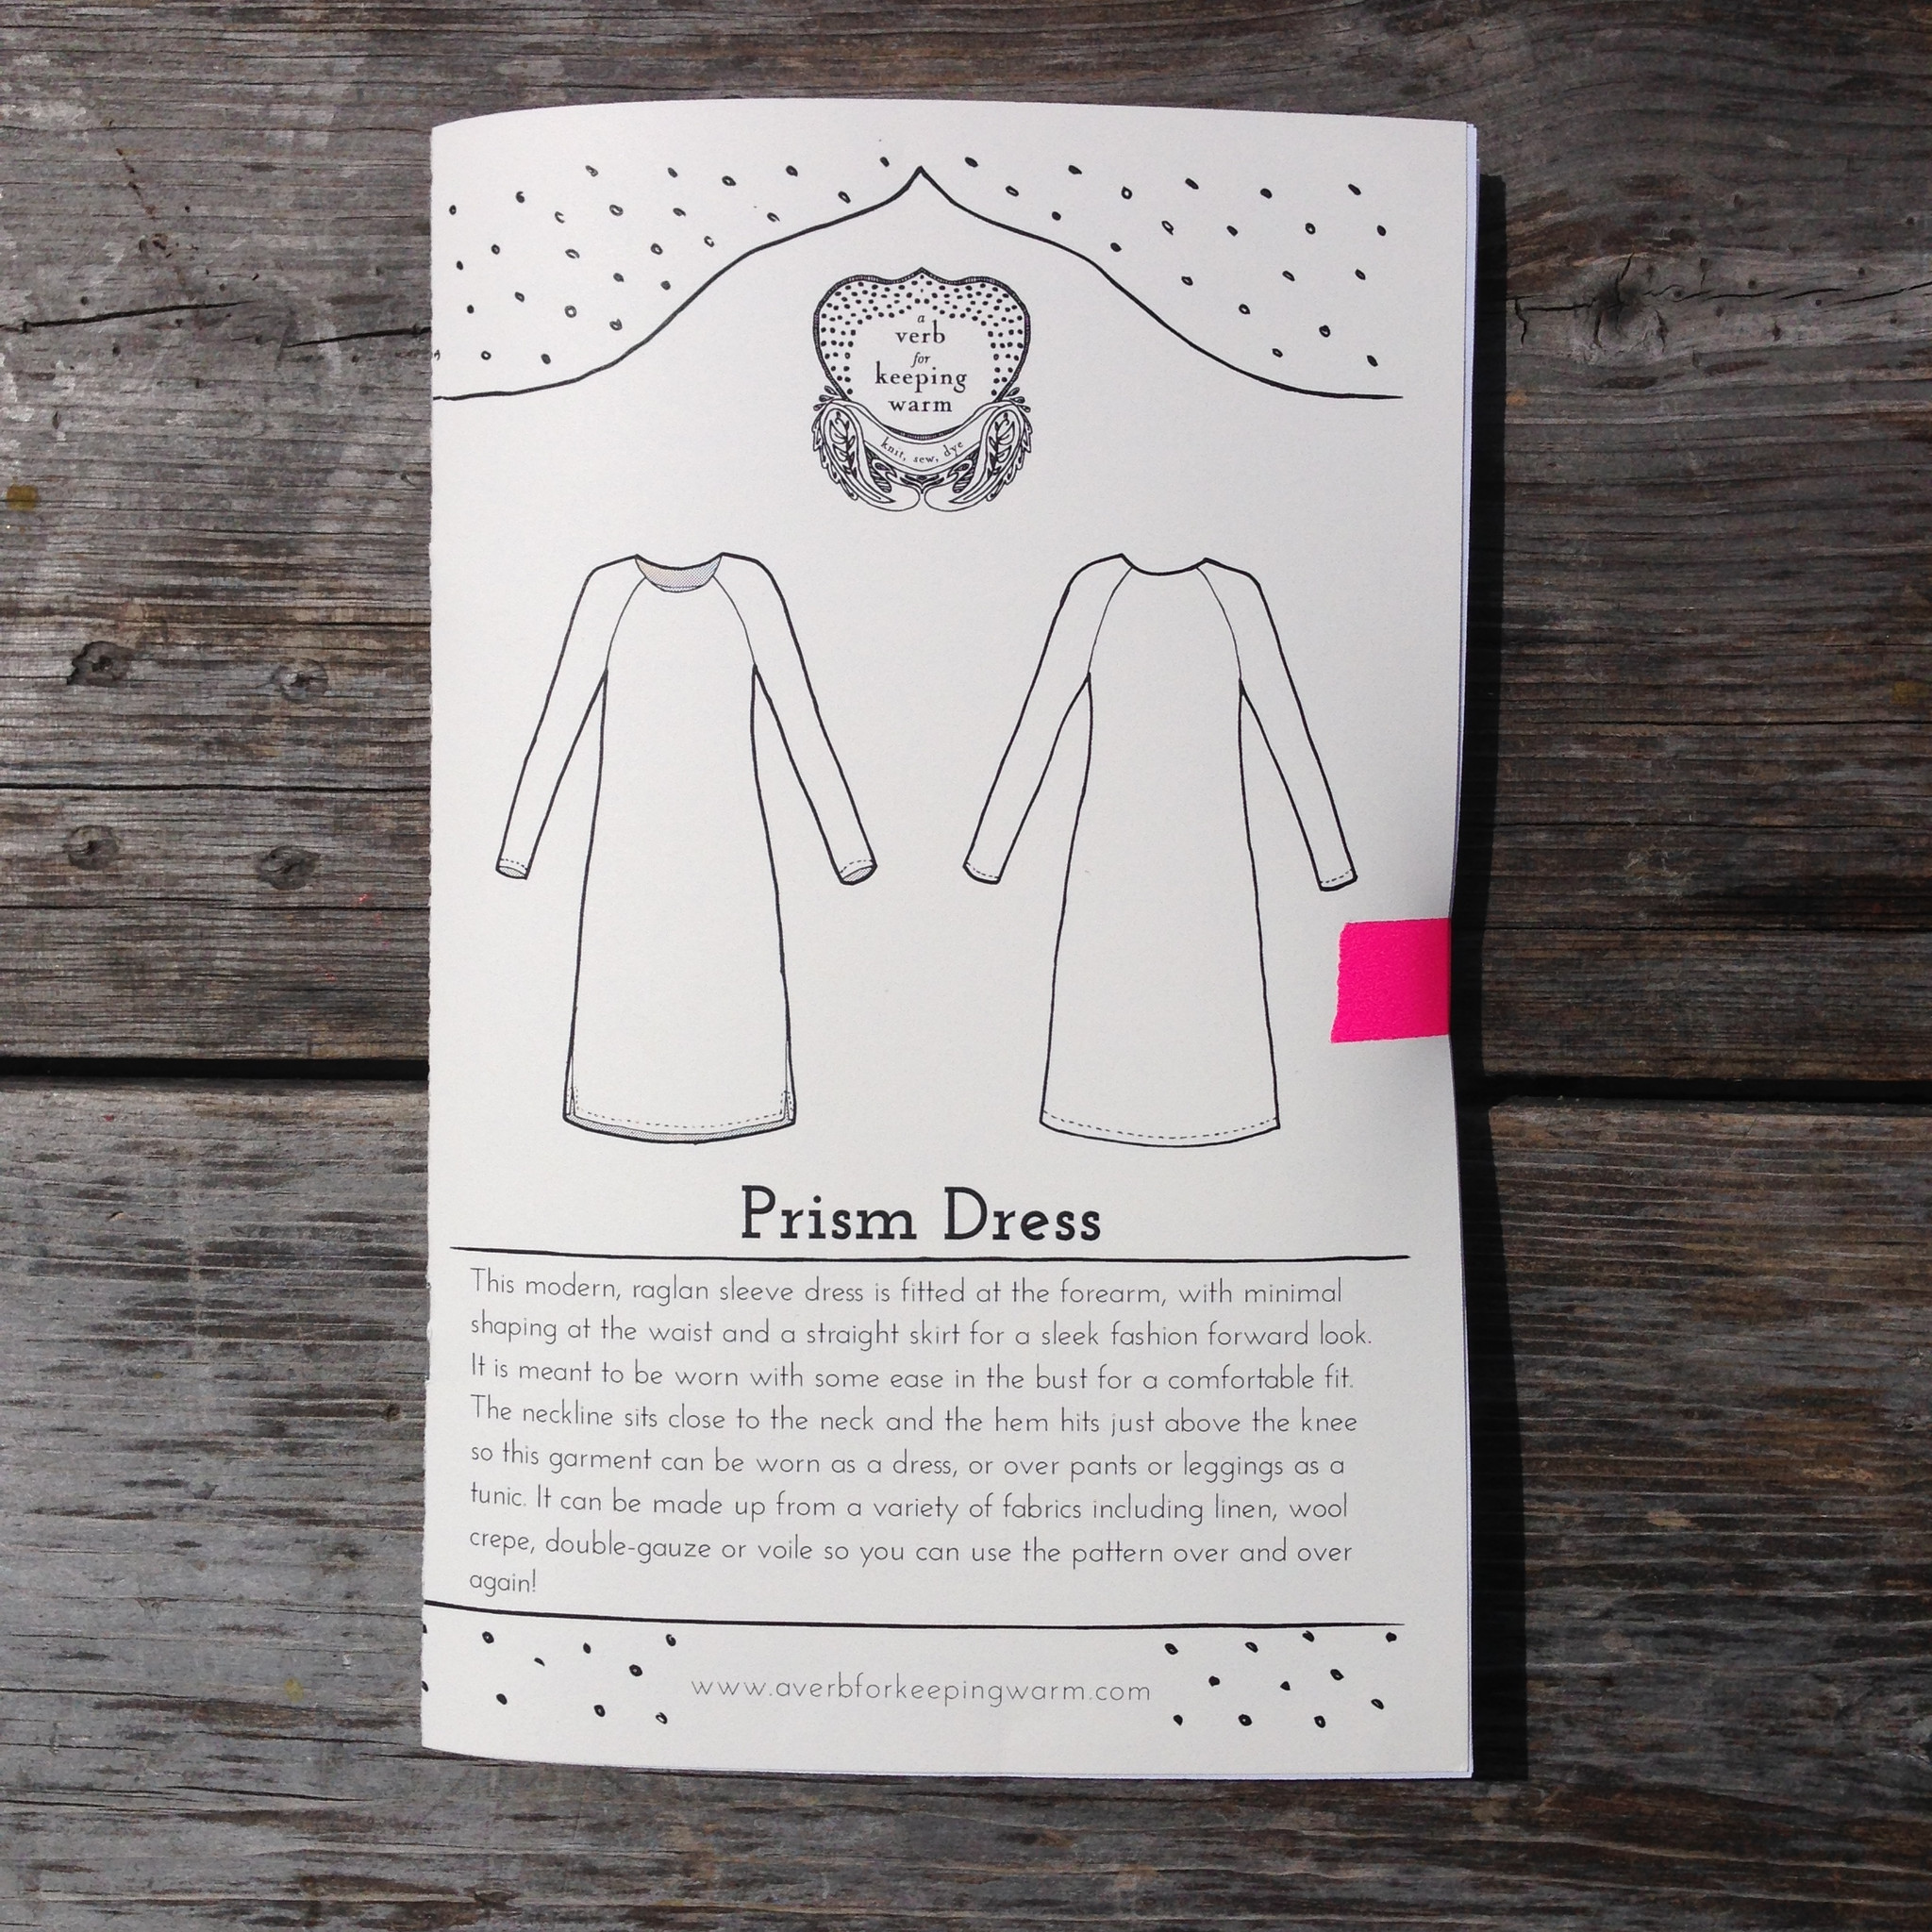 Prism Dress from A Verb for Keeping Warm